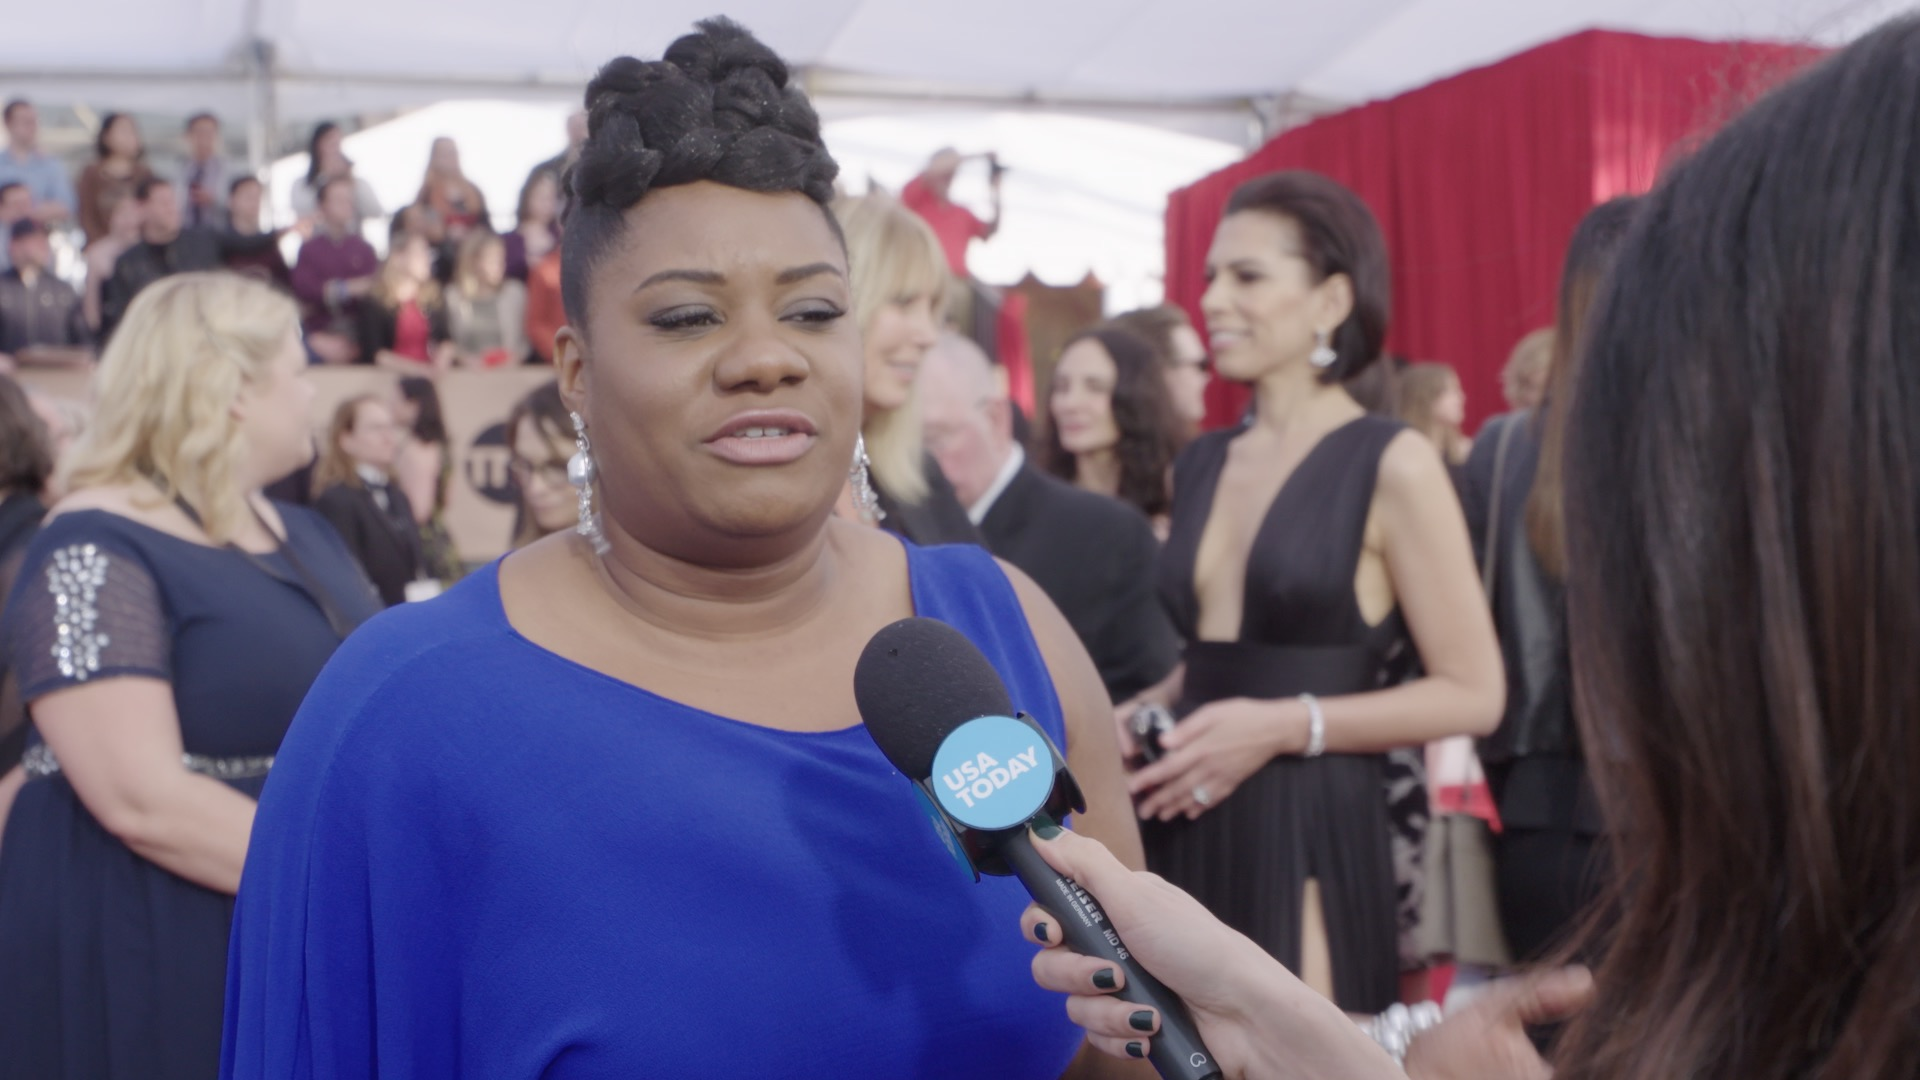 Stars at SAG Awards discuss diversity